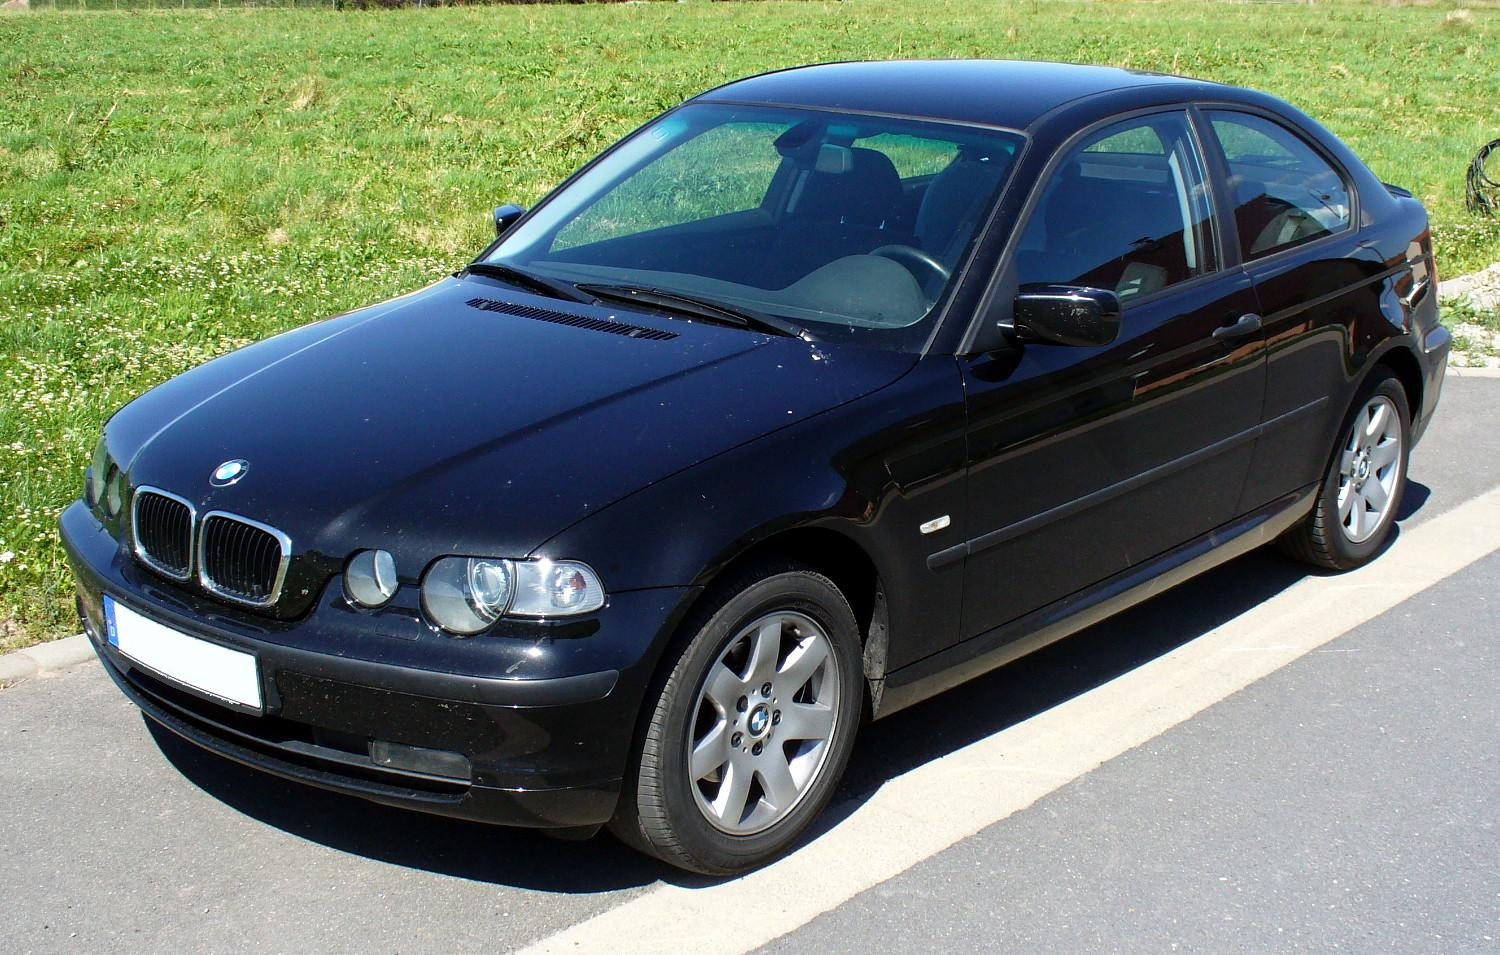 File:BMW E46 Compact.JPG - Wikimedia Commons